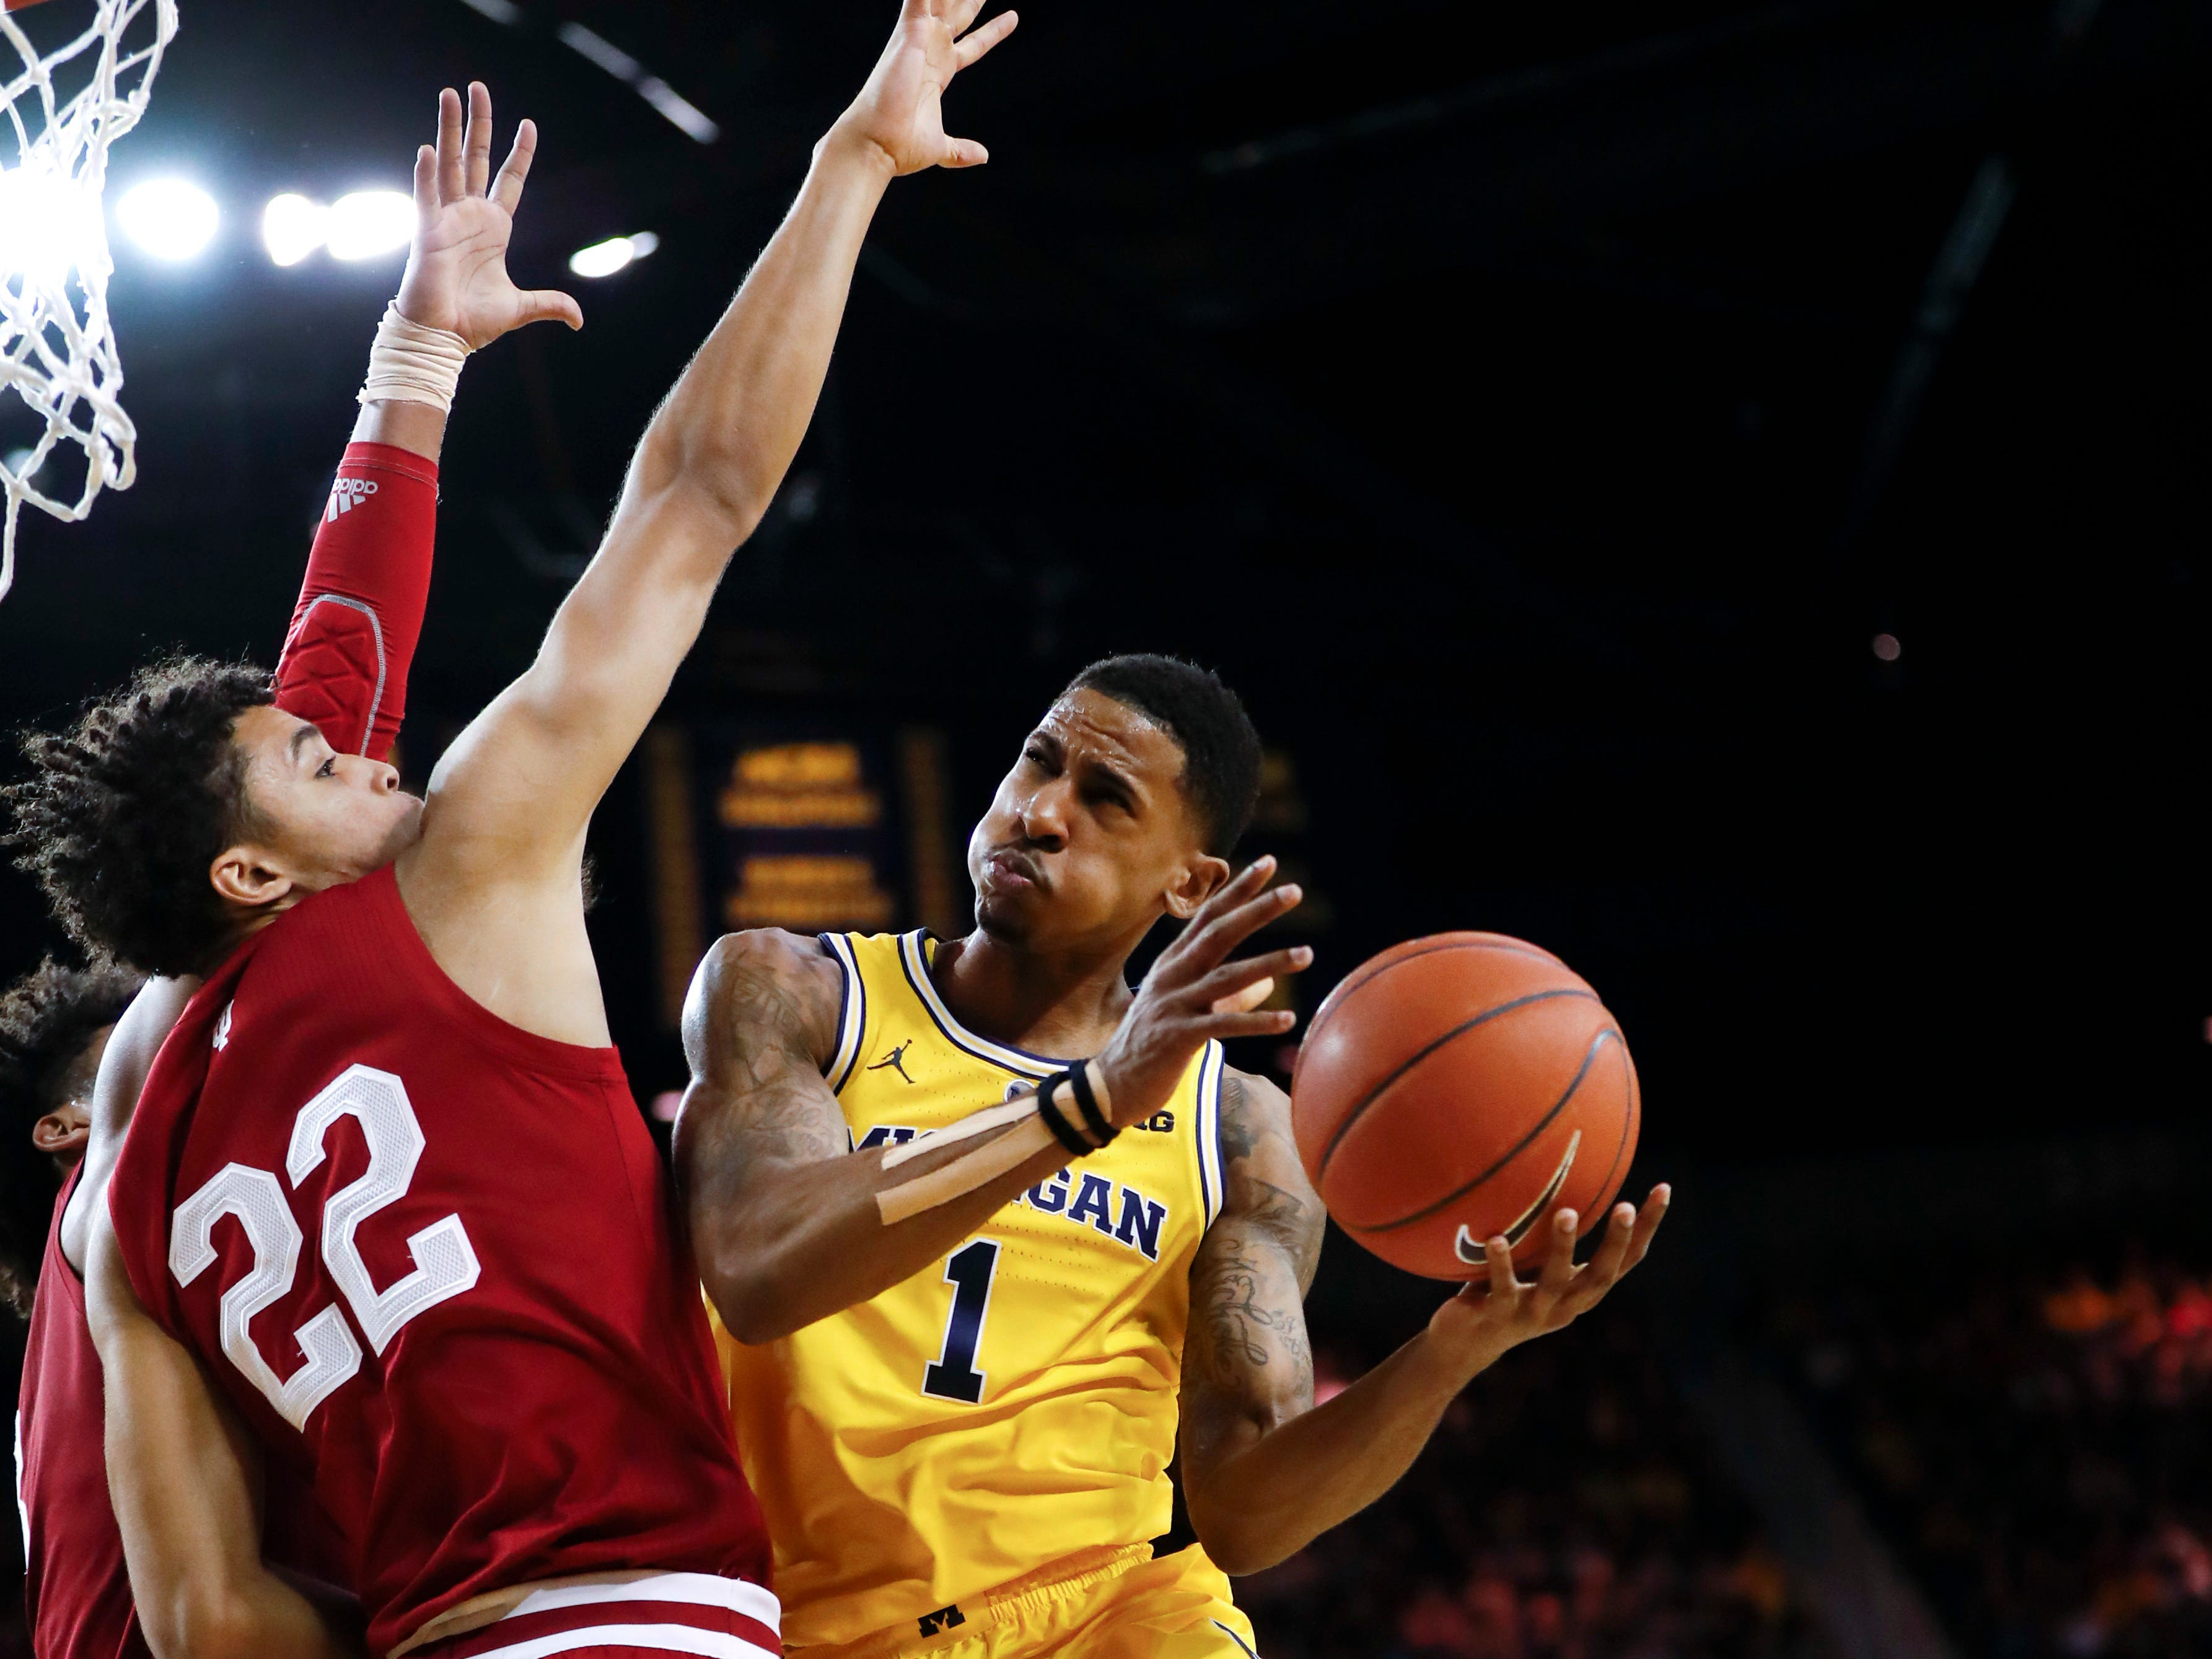 Michigan guard Charles Matthews (1) drives on Indiana forward Clifton Moore (22) in the second half of an NCAA college basketball game in Ann Arbor, Mich., Sunday, Jan. 6, 2019.